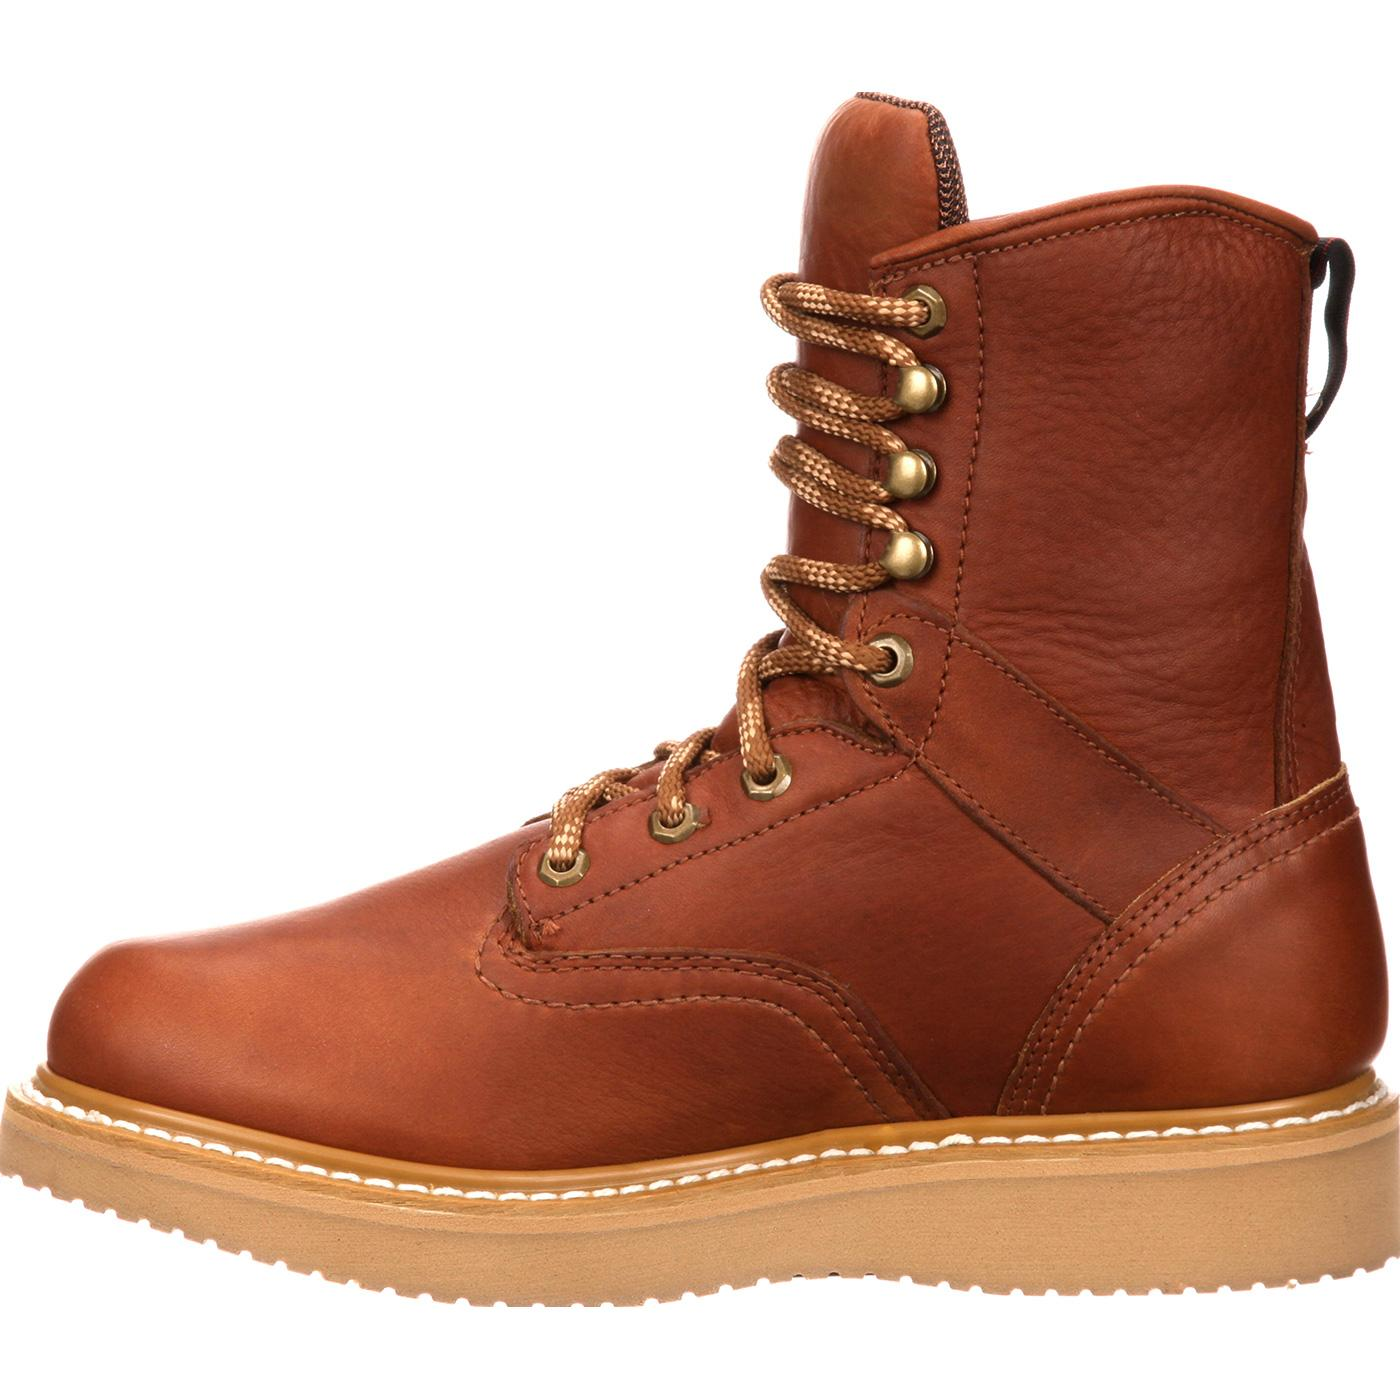 s 8 quot leather work boots with wedge sole boot